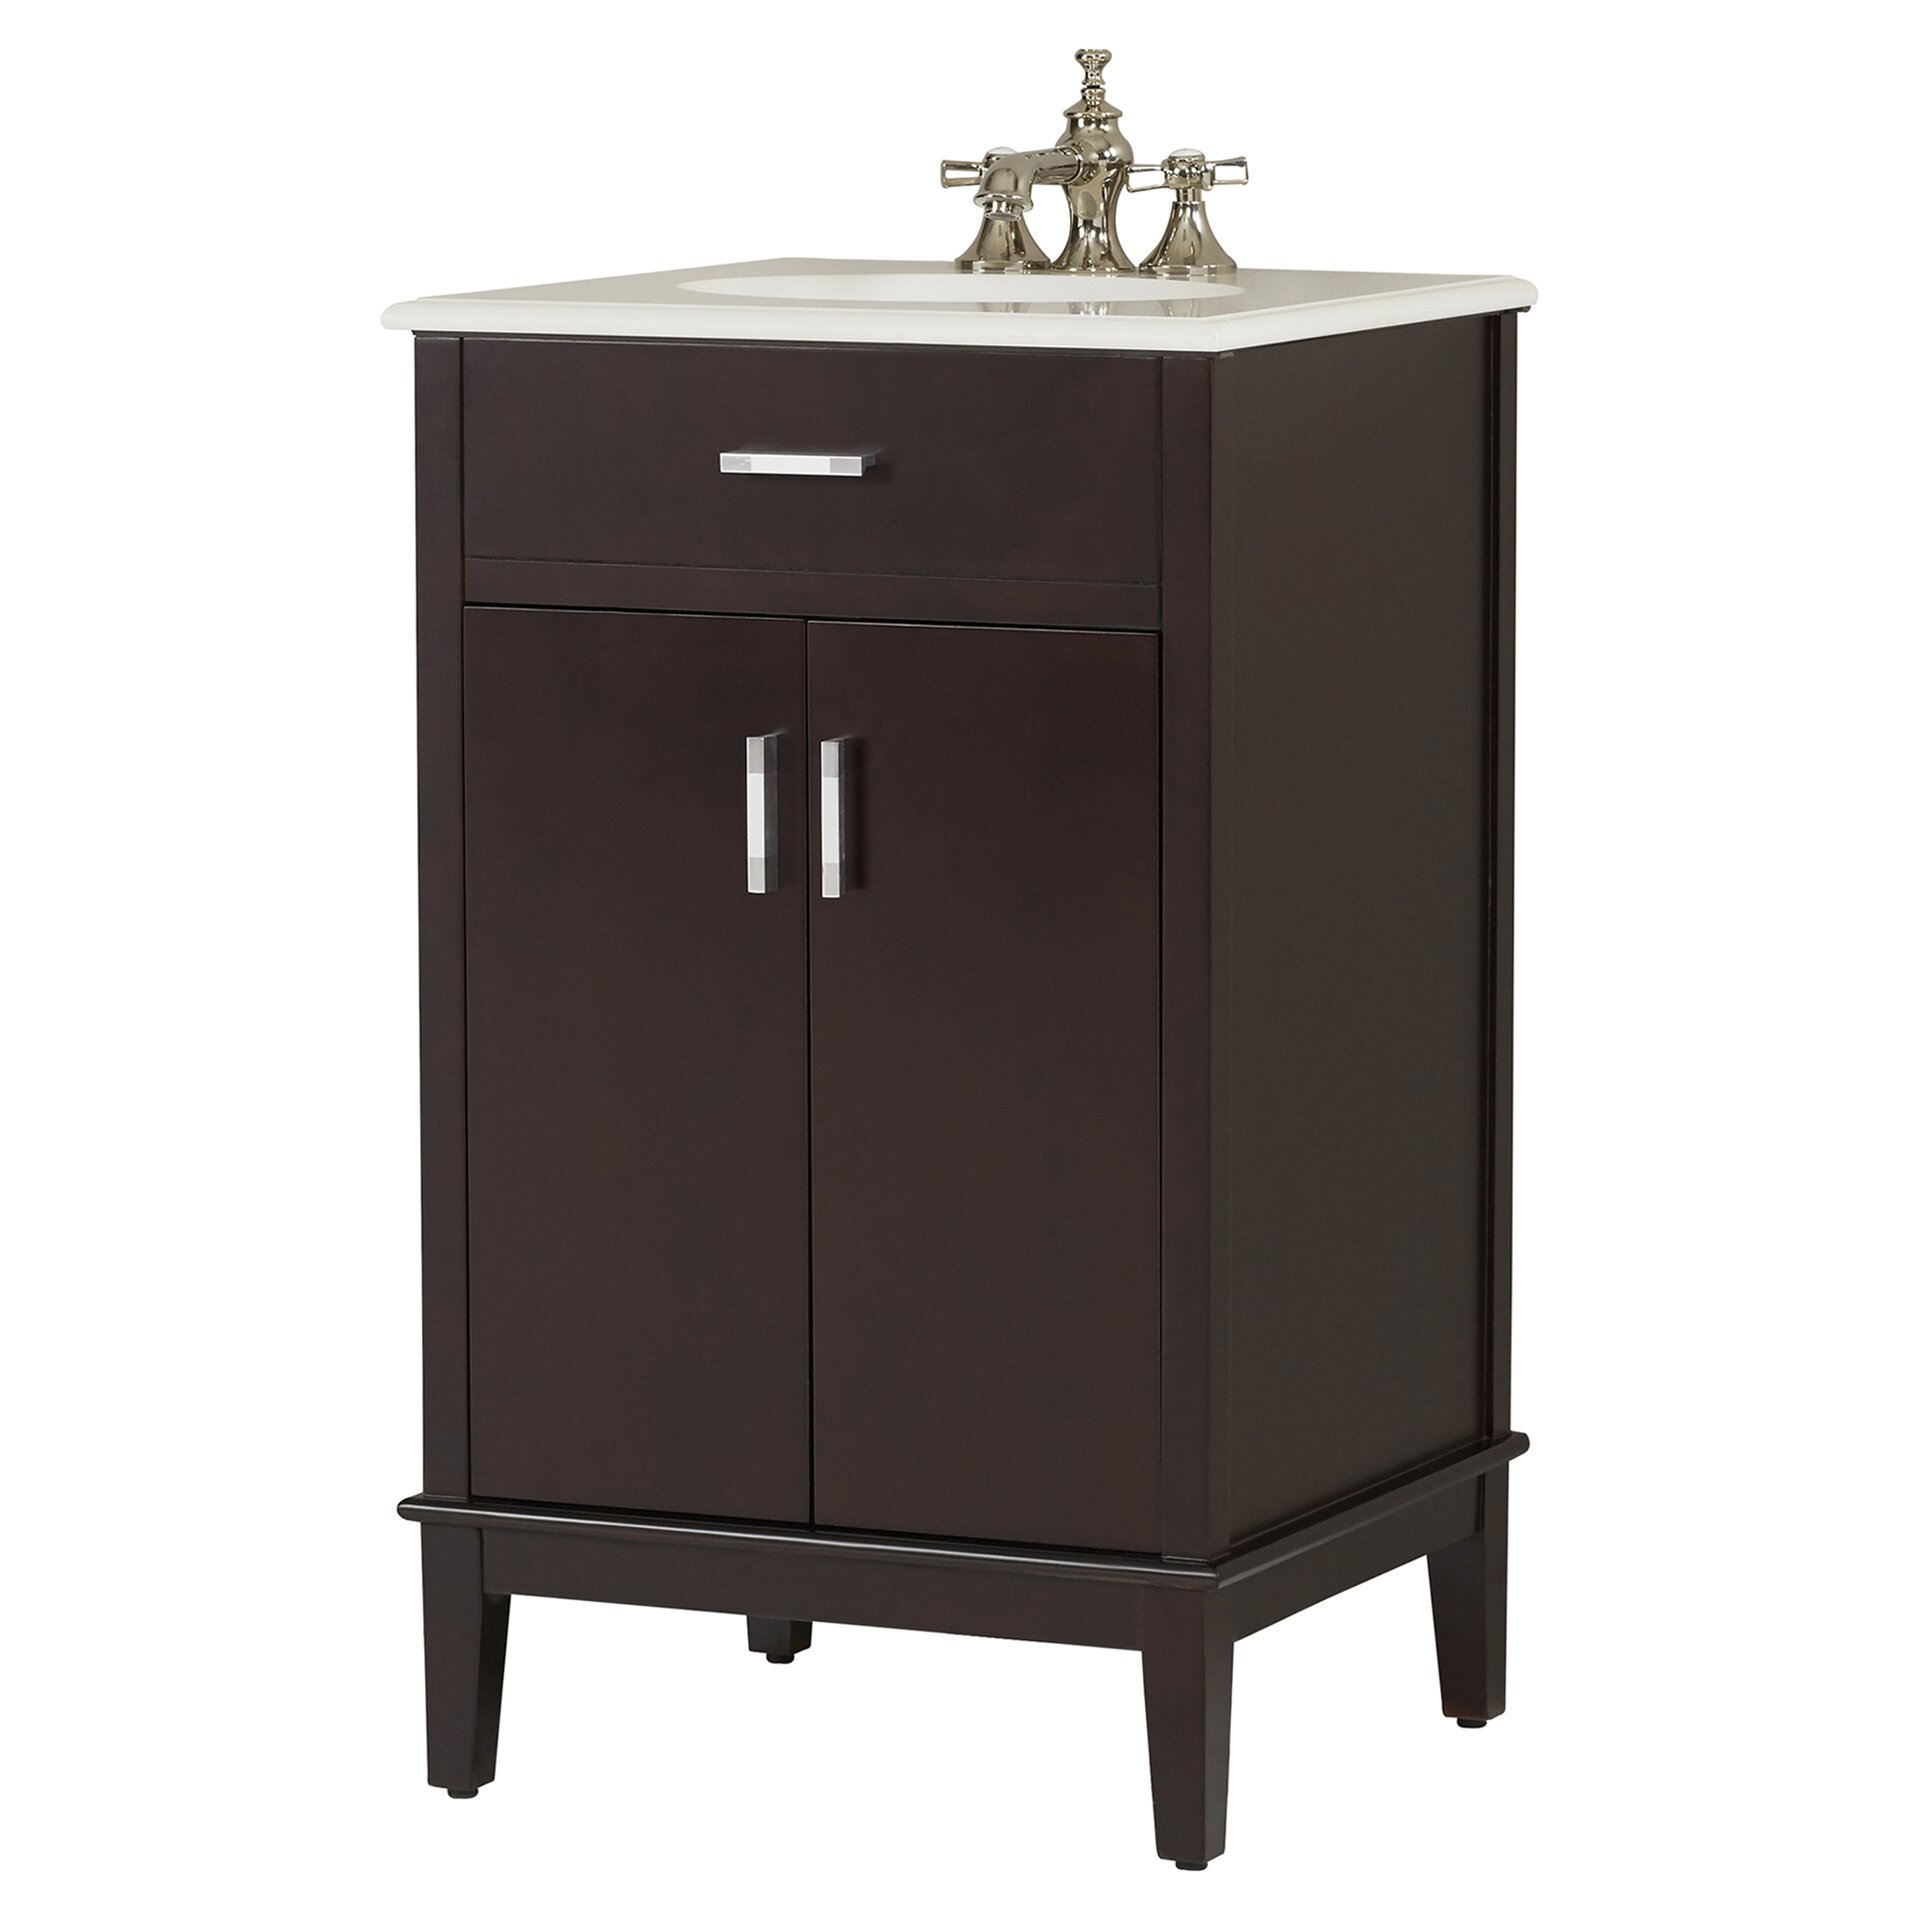 Bathroom single vanity - Varick Gallery Reg Pinecrest 21 Quot Single Bathroom Vanity Set